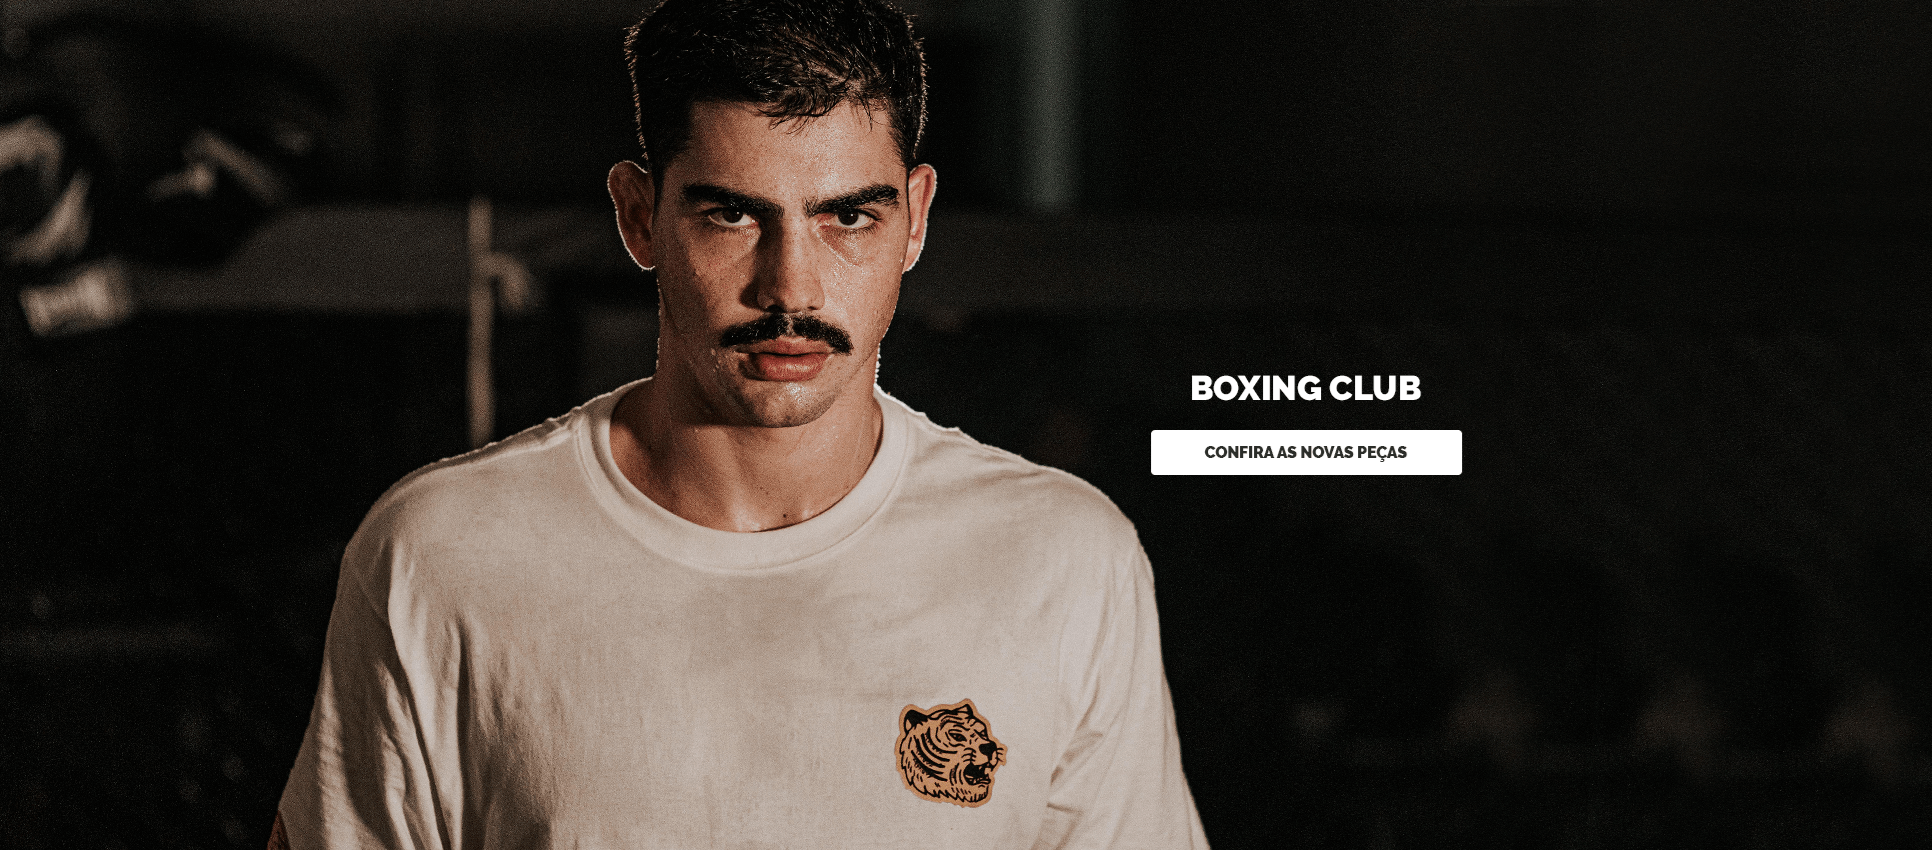 Boxing Club - Approve